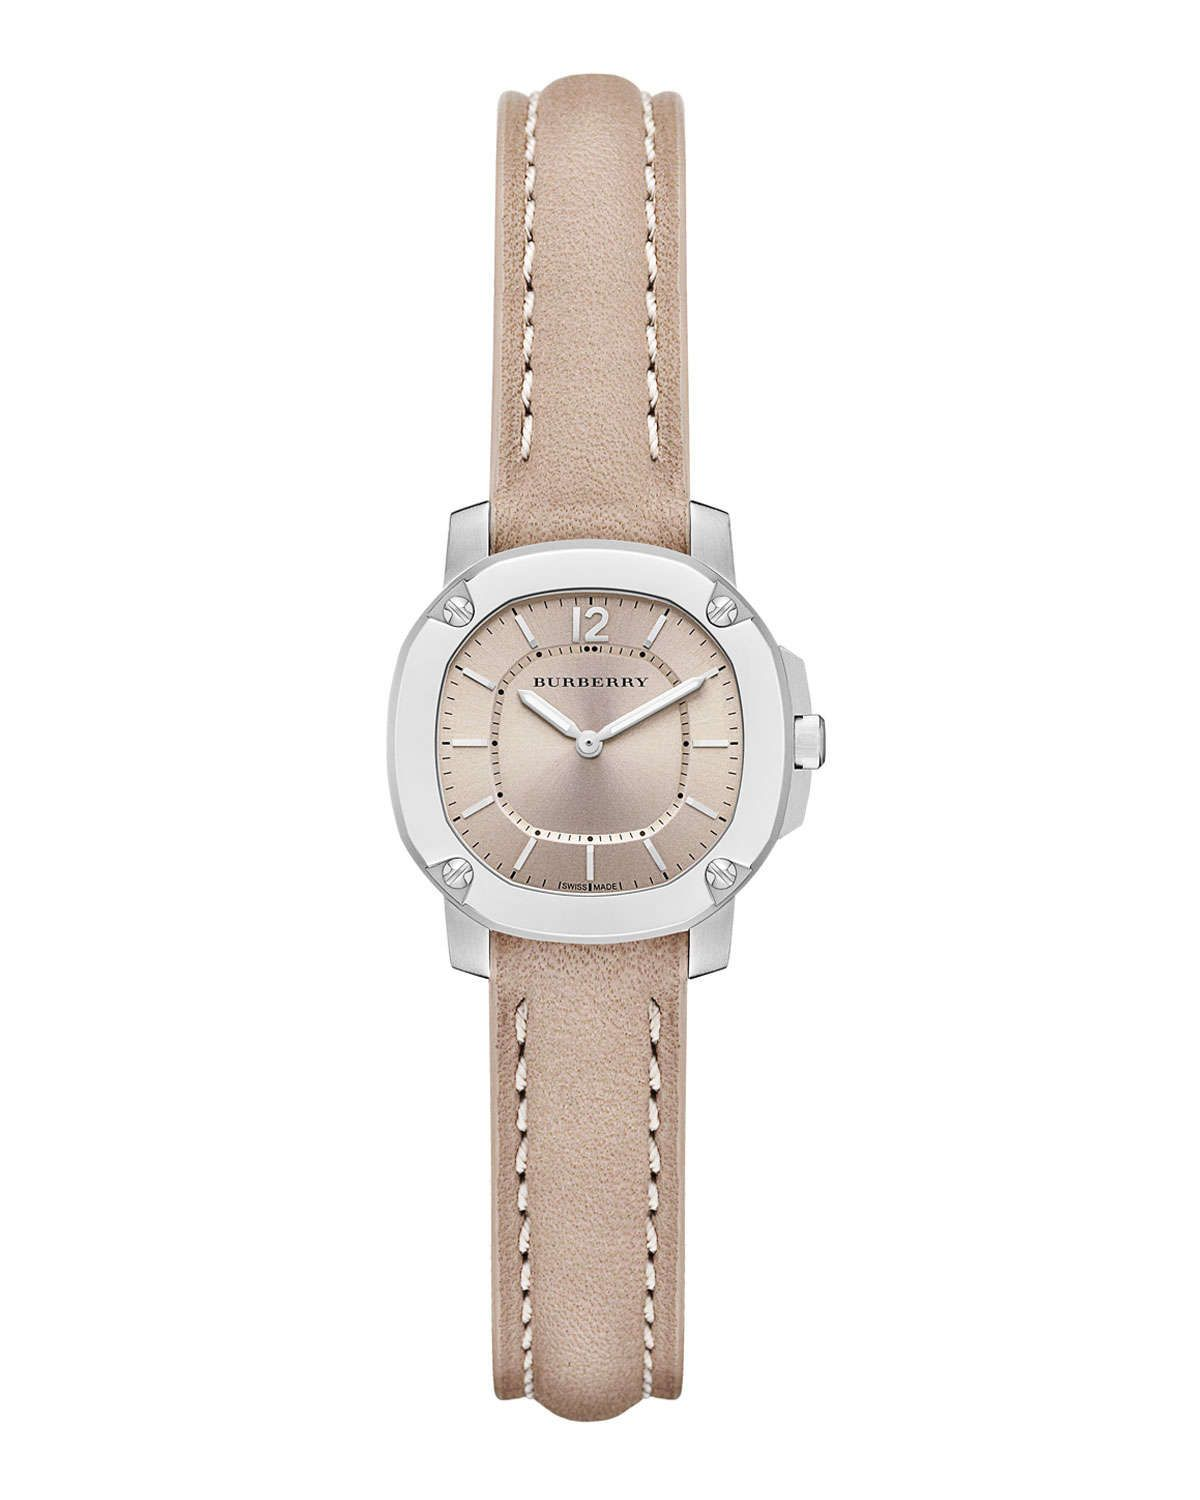 26mm Octagonal Stainless Steel Watch with Tan Leather Strap